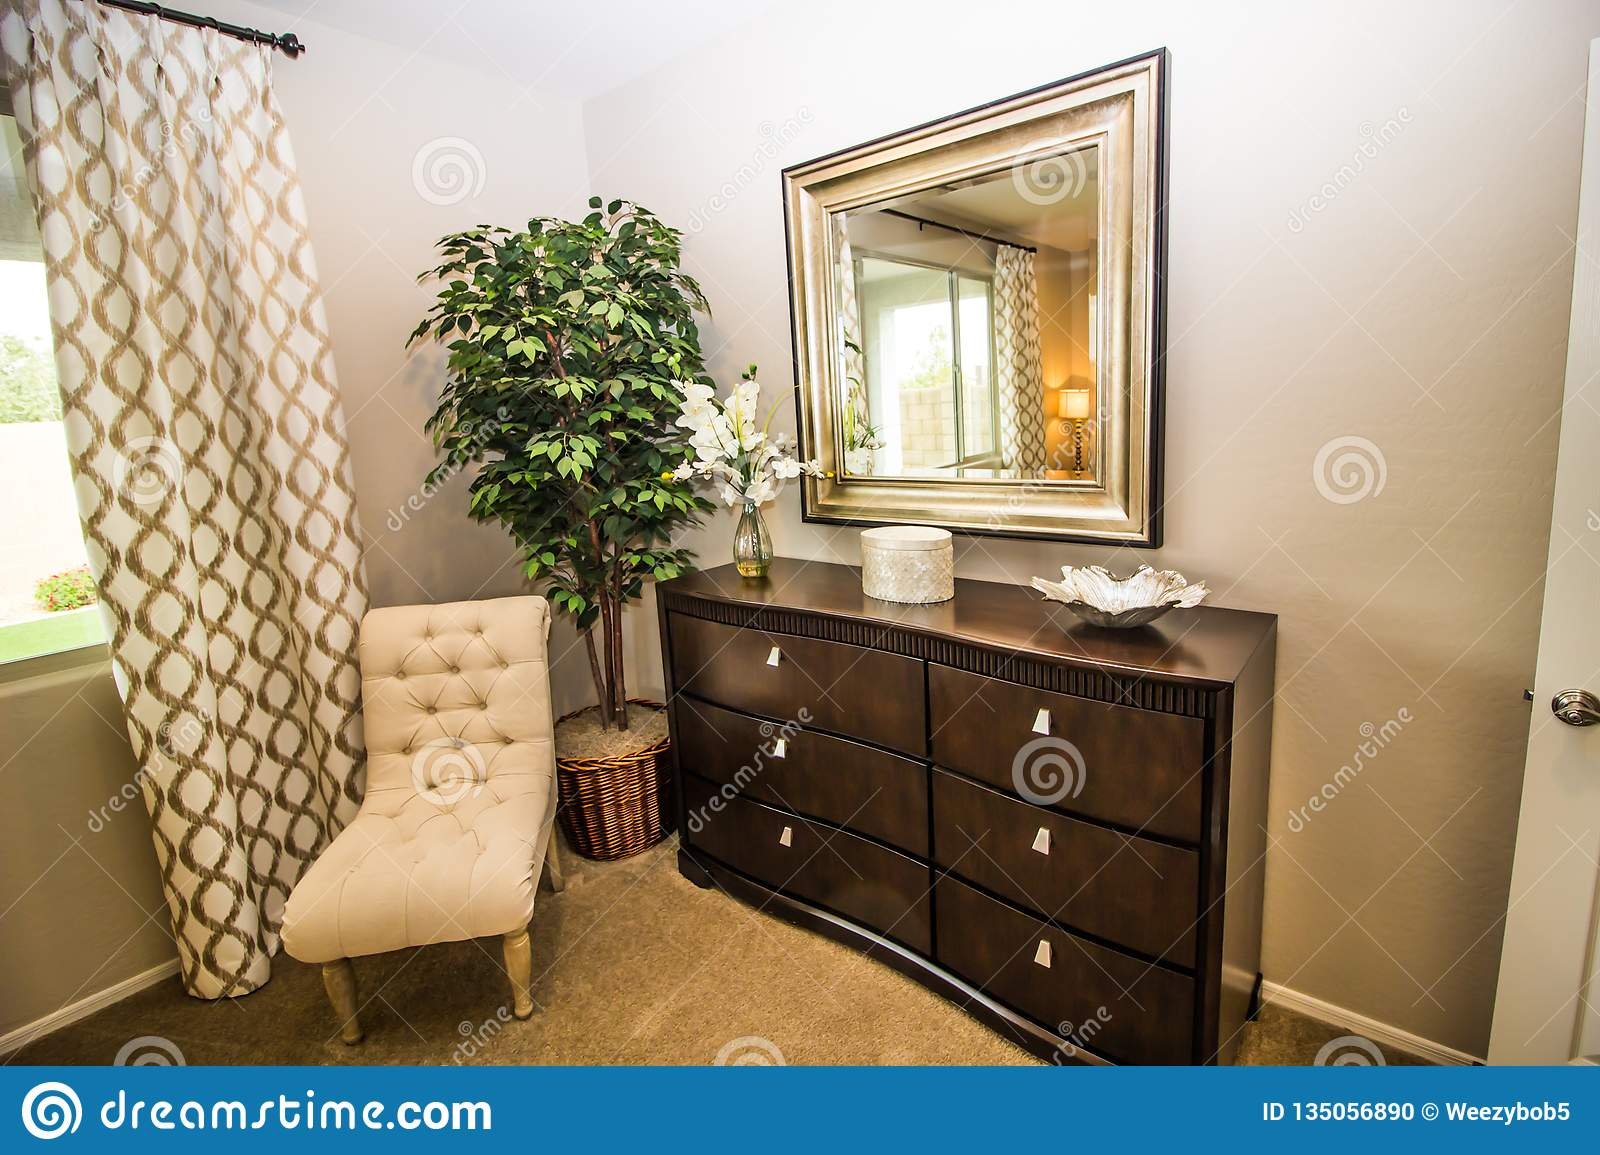 Chest Of Drawers And Mirror In Bedroom Stock Photo Image Of Decor Modern 135056890